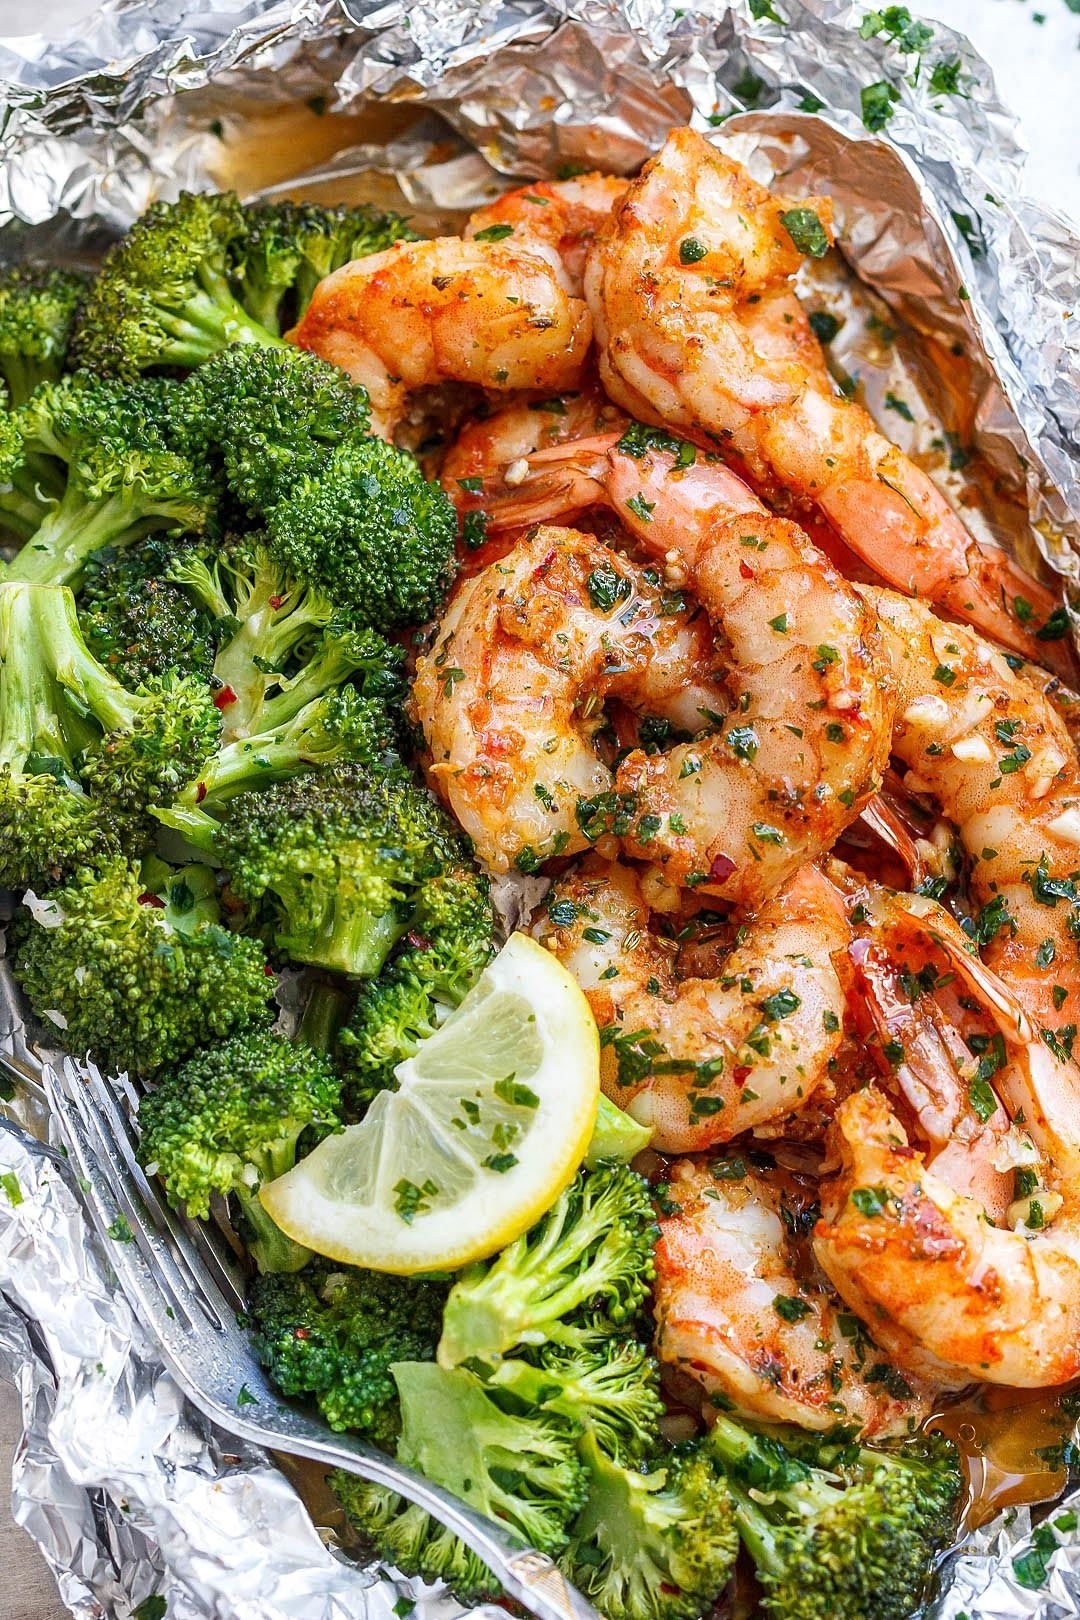 Baked Shrimp and Broccoli Foil Packs with Garlic Lemon Butter Sauce